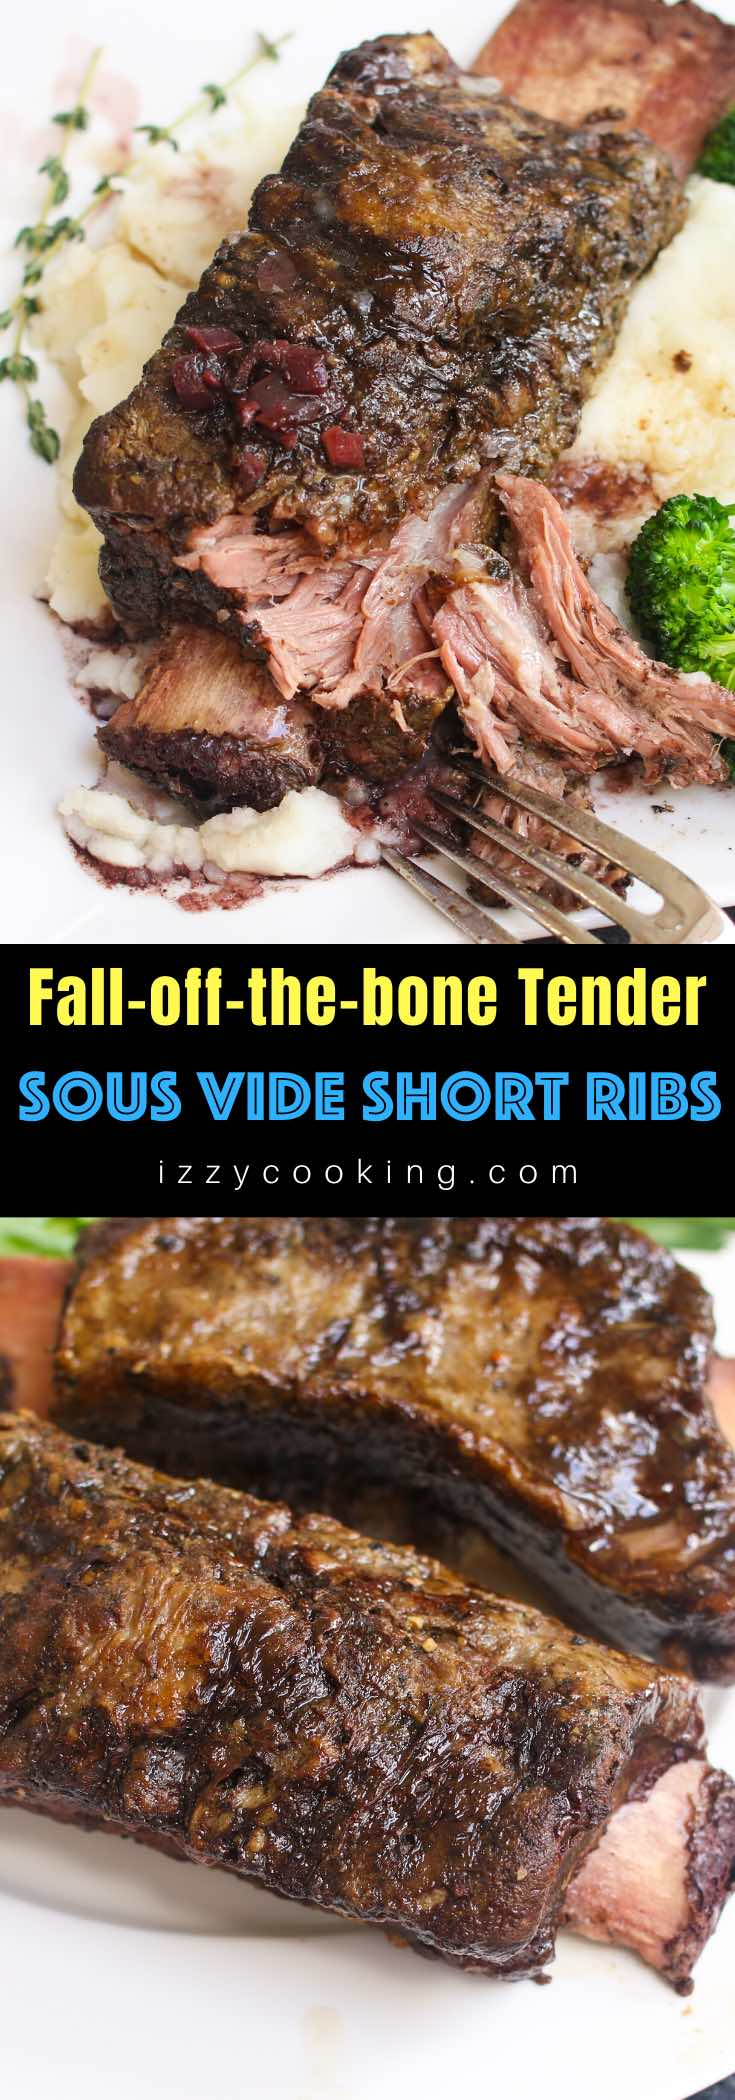 Sous Vide short ribs are fall-off-the-bone tender and unbelievably easy to make. Sous vide method is a perfect way to cook tough cuts such as beef ribs to the precise temperature you set, making the meat super tender. #SousVideShortRibs #BeefShortRibs